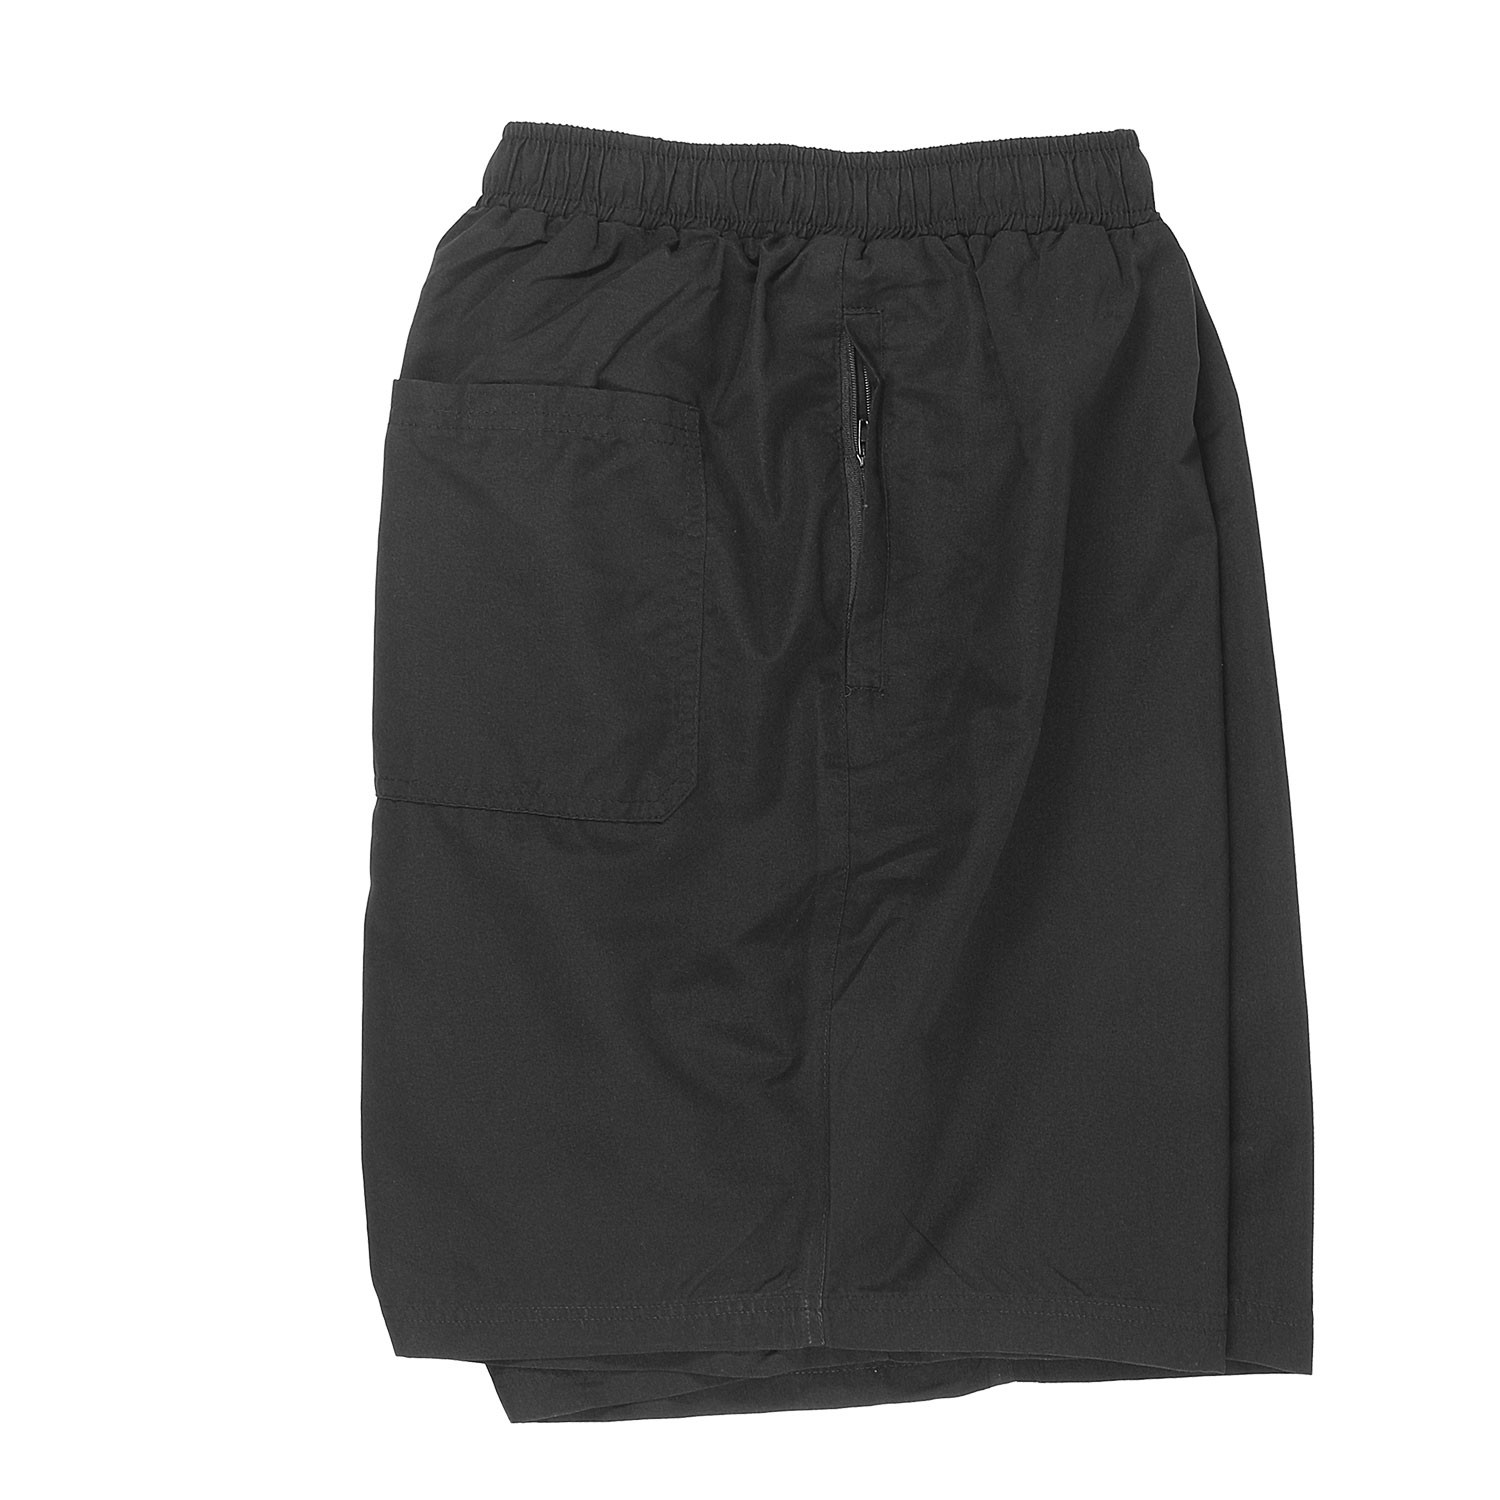 Detail Image to Black Swimming trunks by Abraxas in big sizes up to 10XL